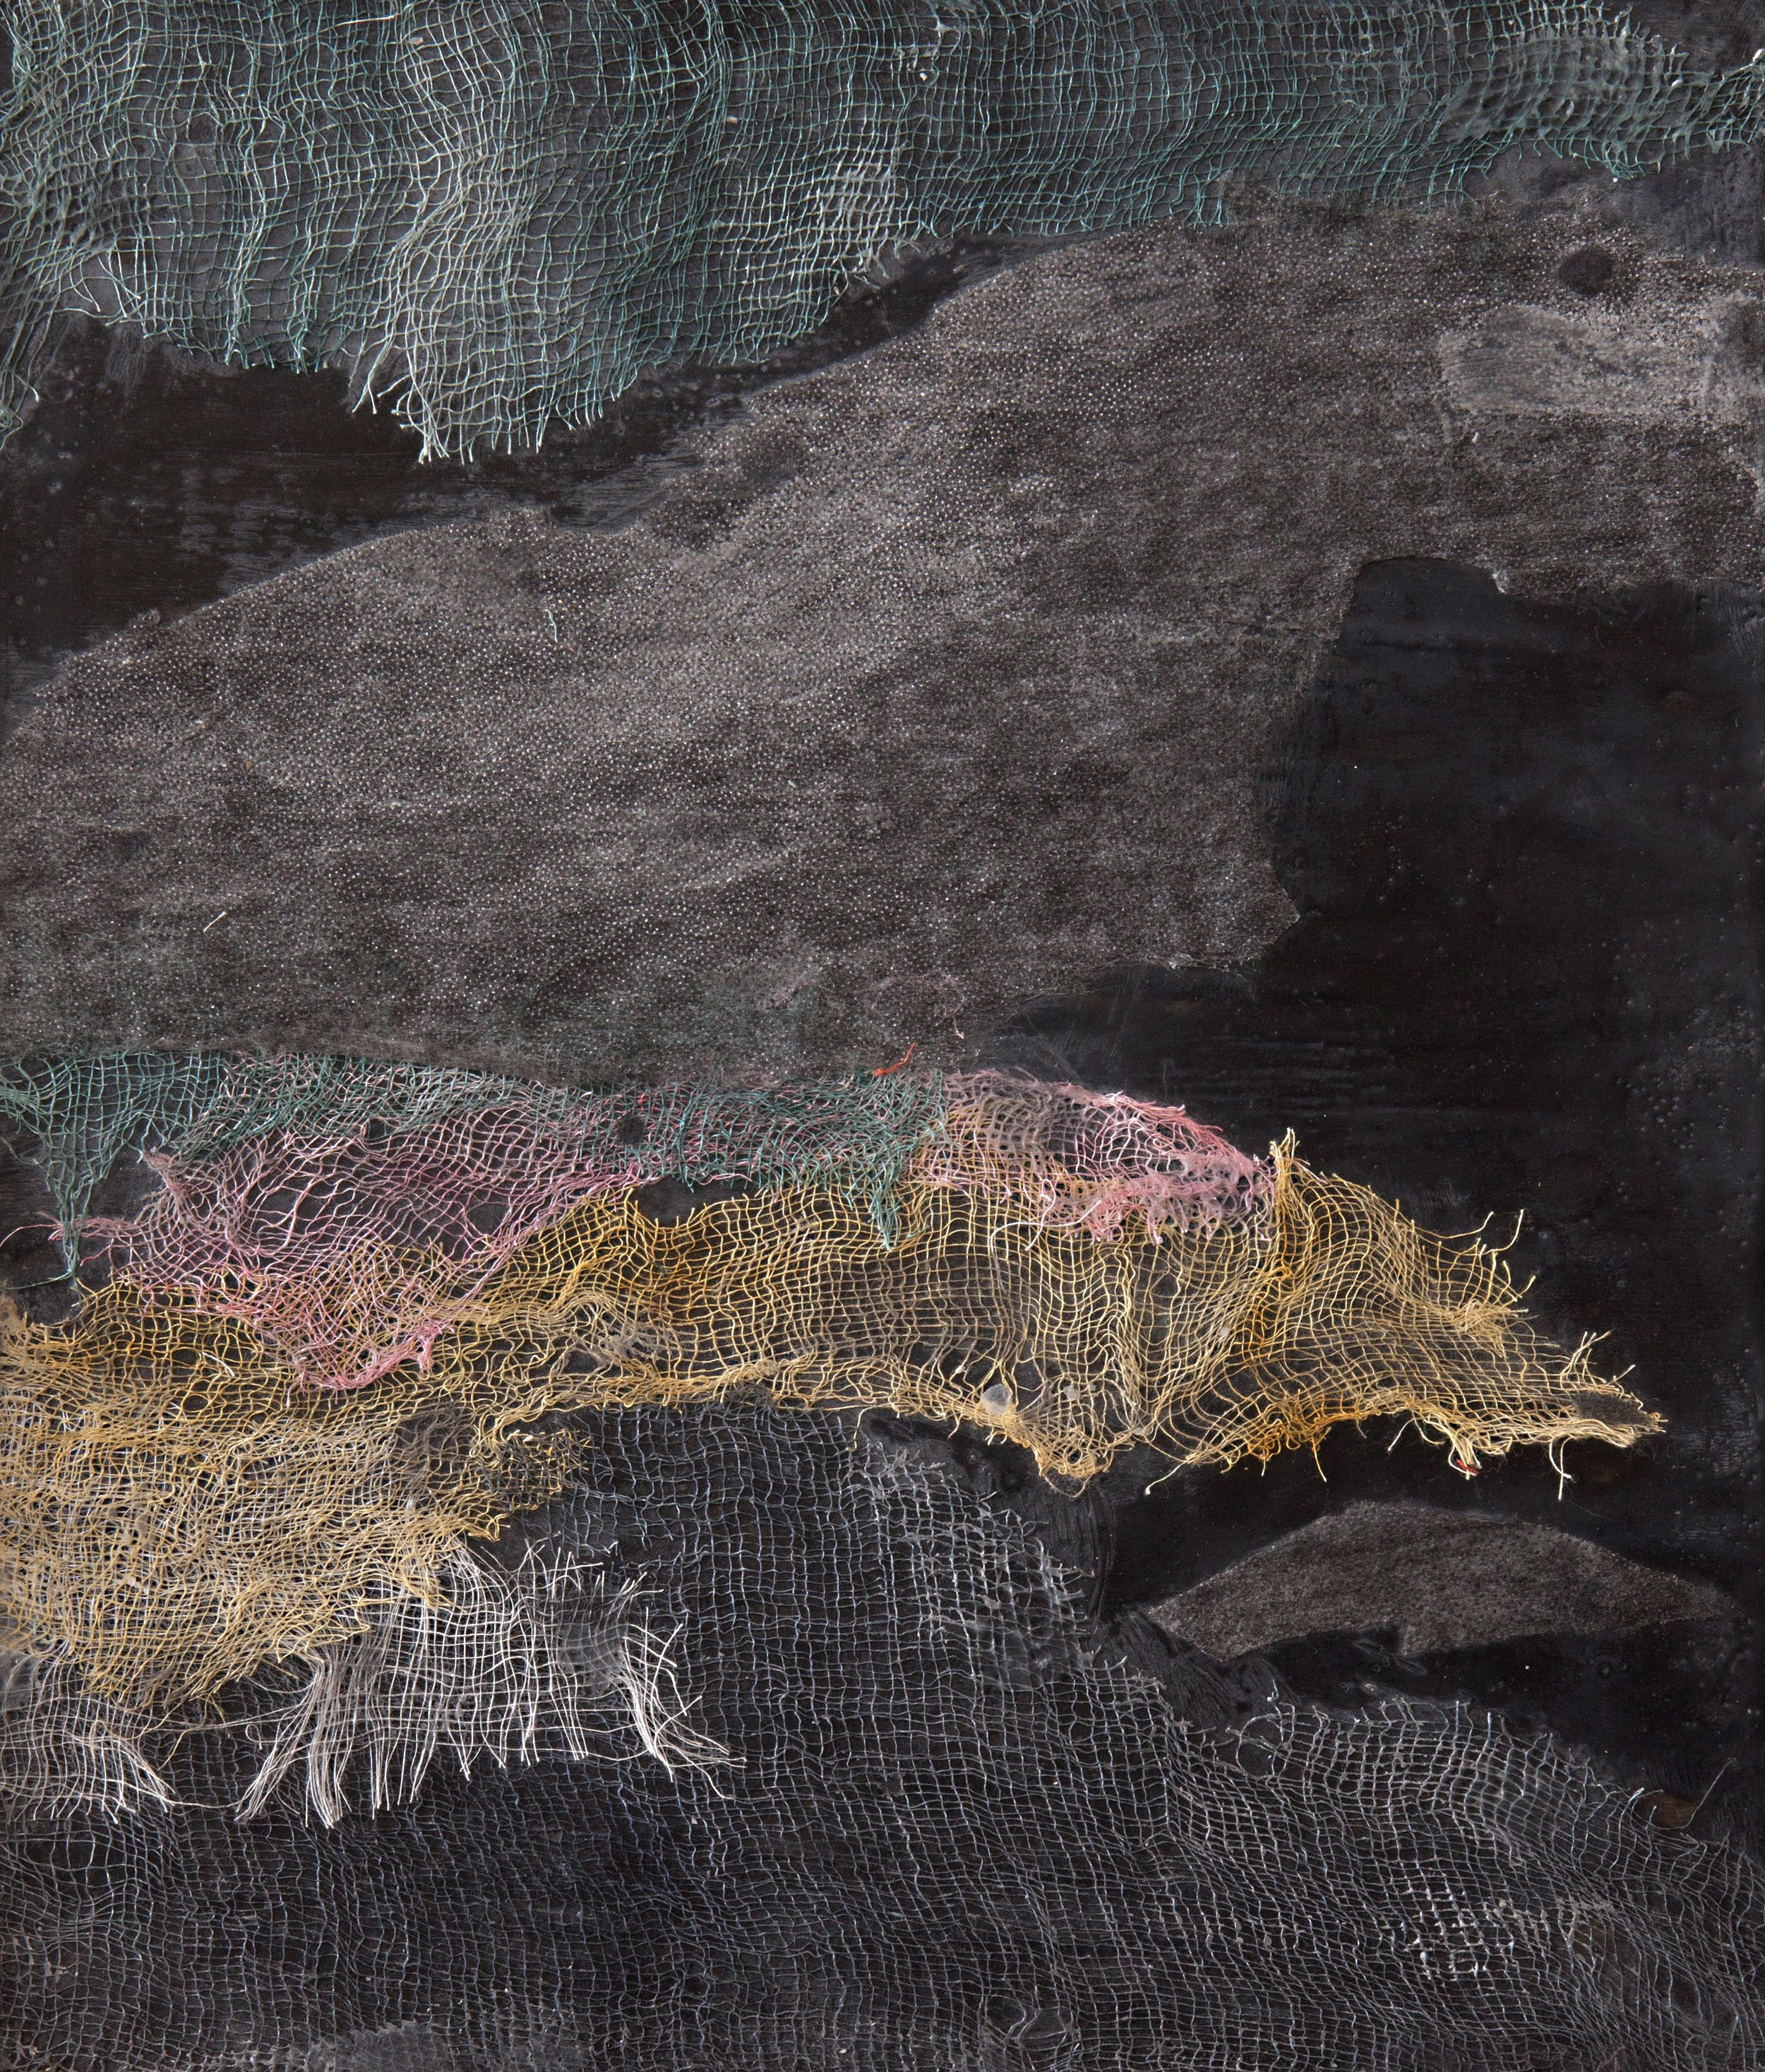 Image: Beverley Spiller, Fortuitous Occurence, Encaustic and Fabric, 26cm x 31cm